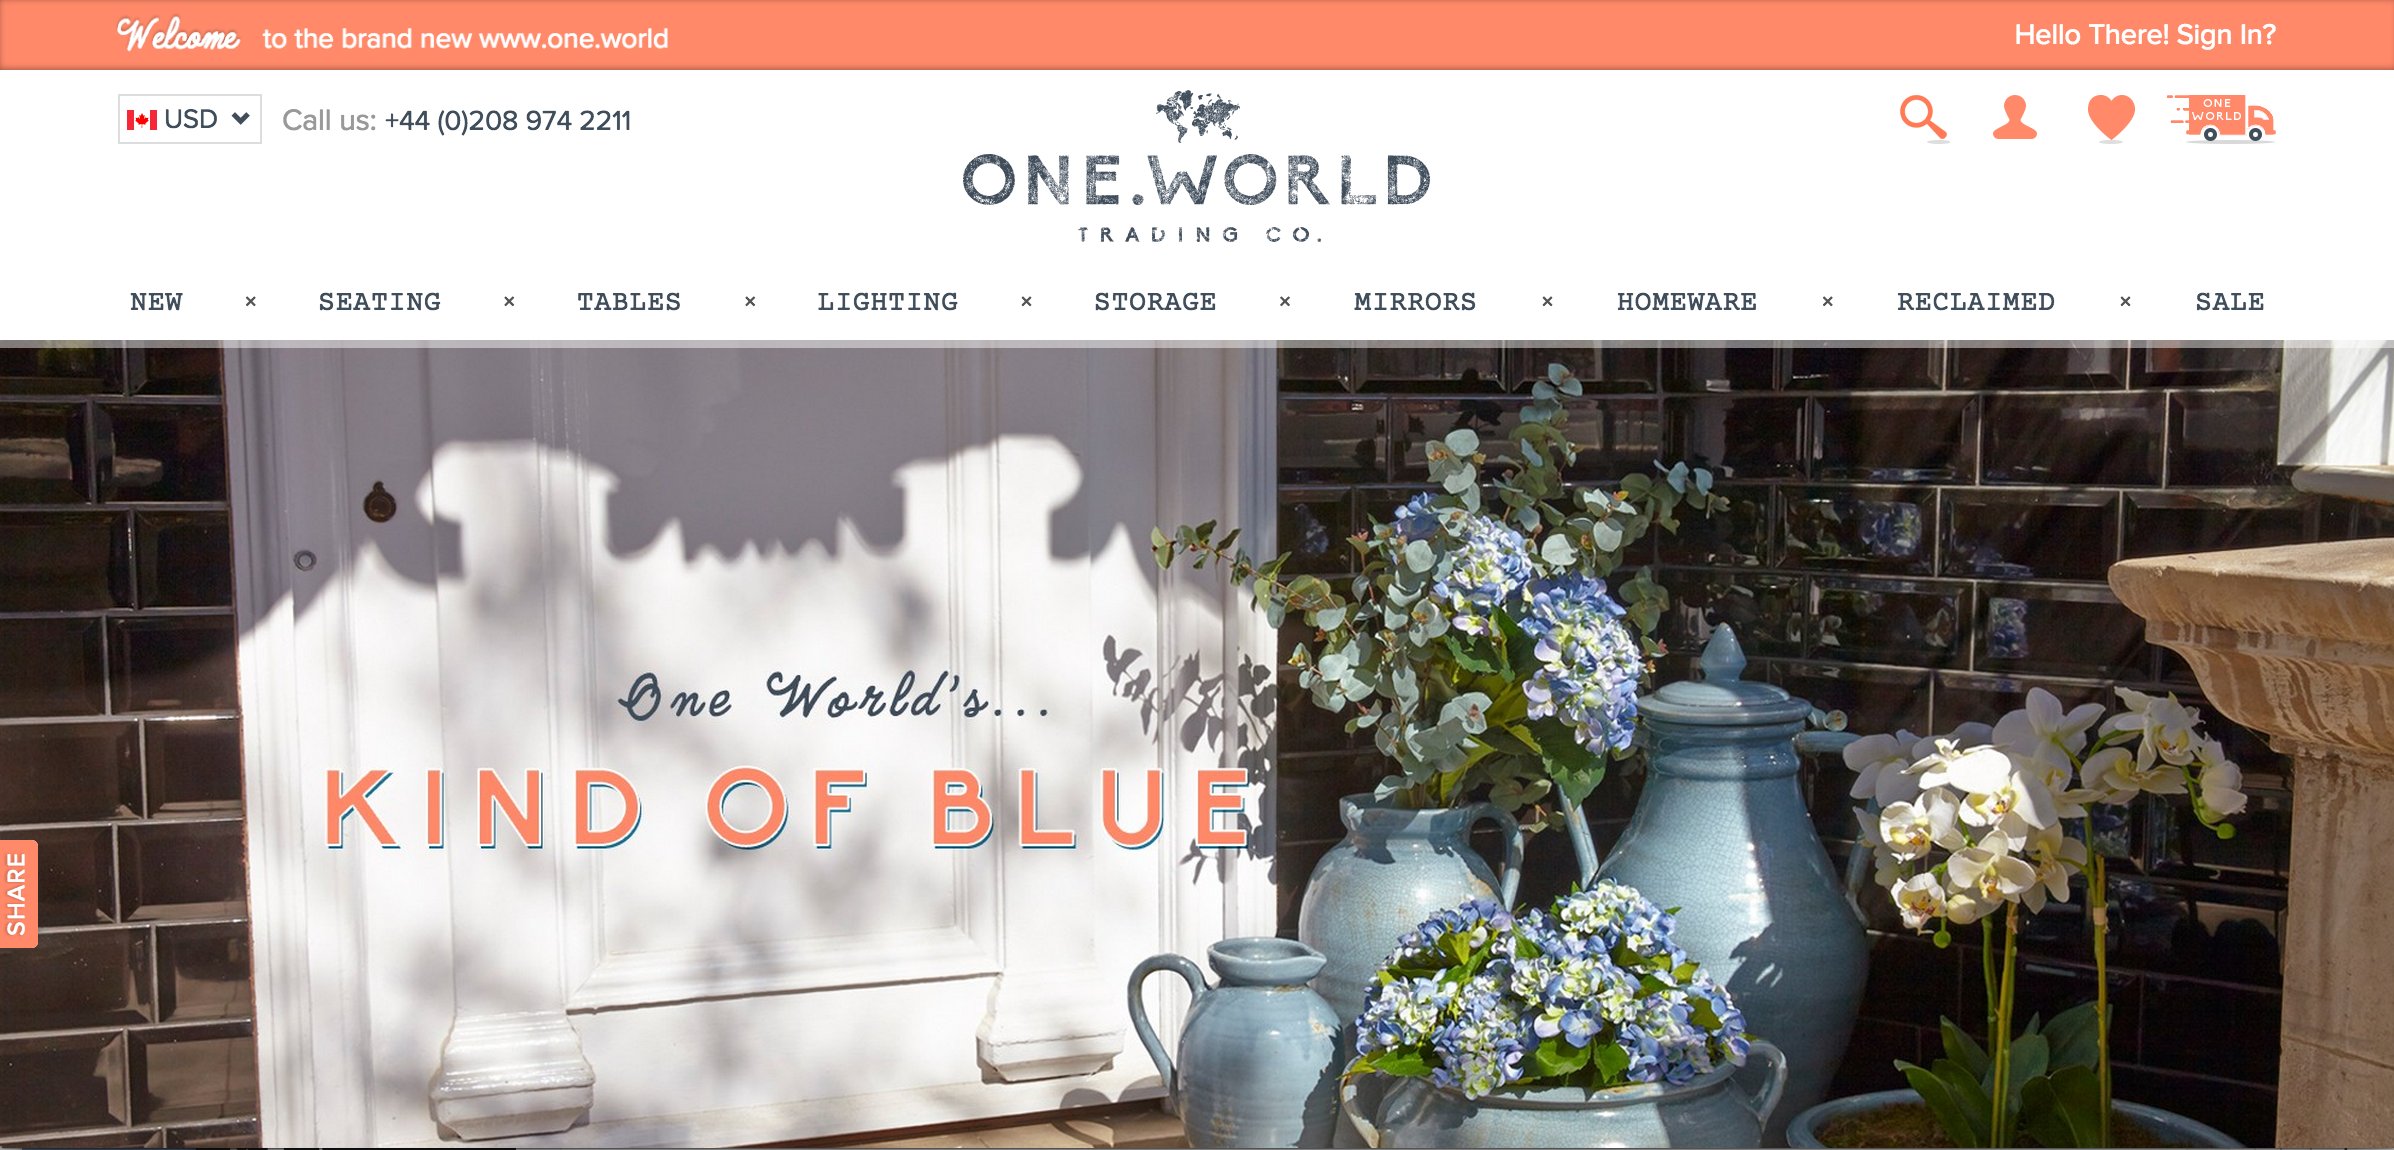 One World Trading Co.